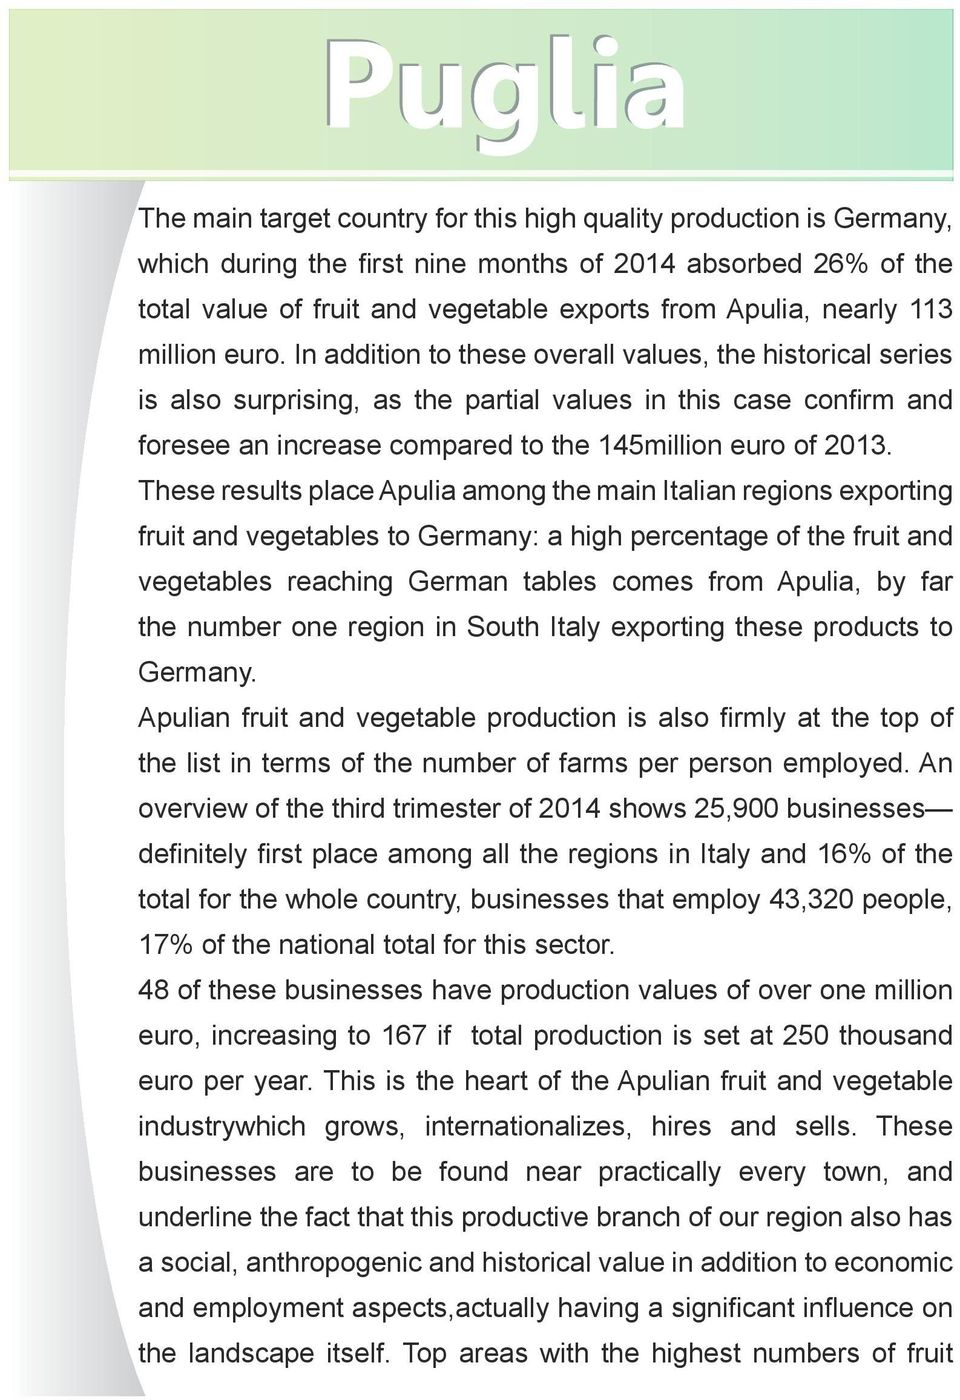 These results place Apulia among the main Italian regions exporting fruit and vegetables to Germany: a high percentage of the fruit and vegetables reaching German tables comes from Apulia, by far the